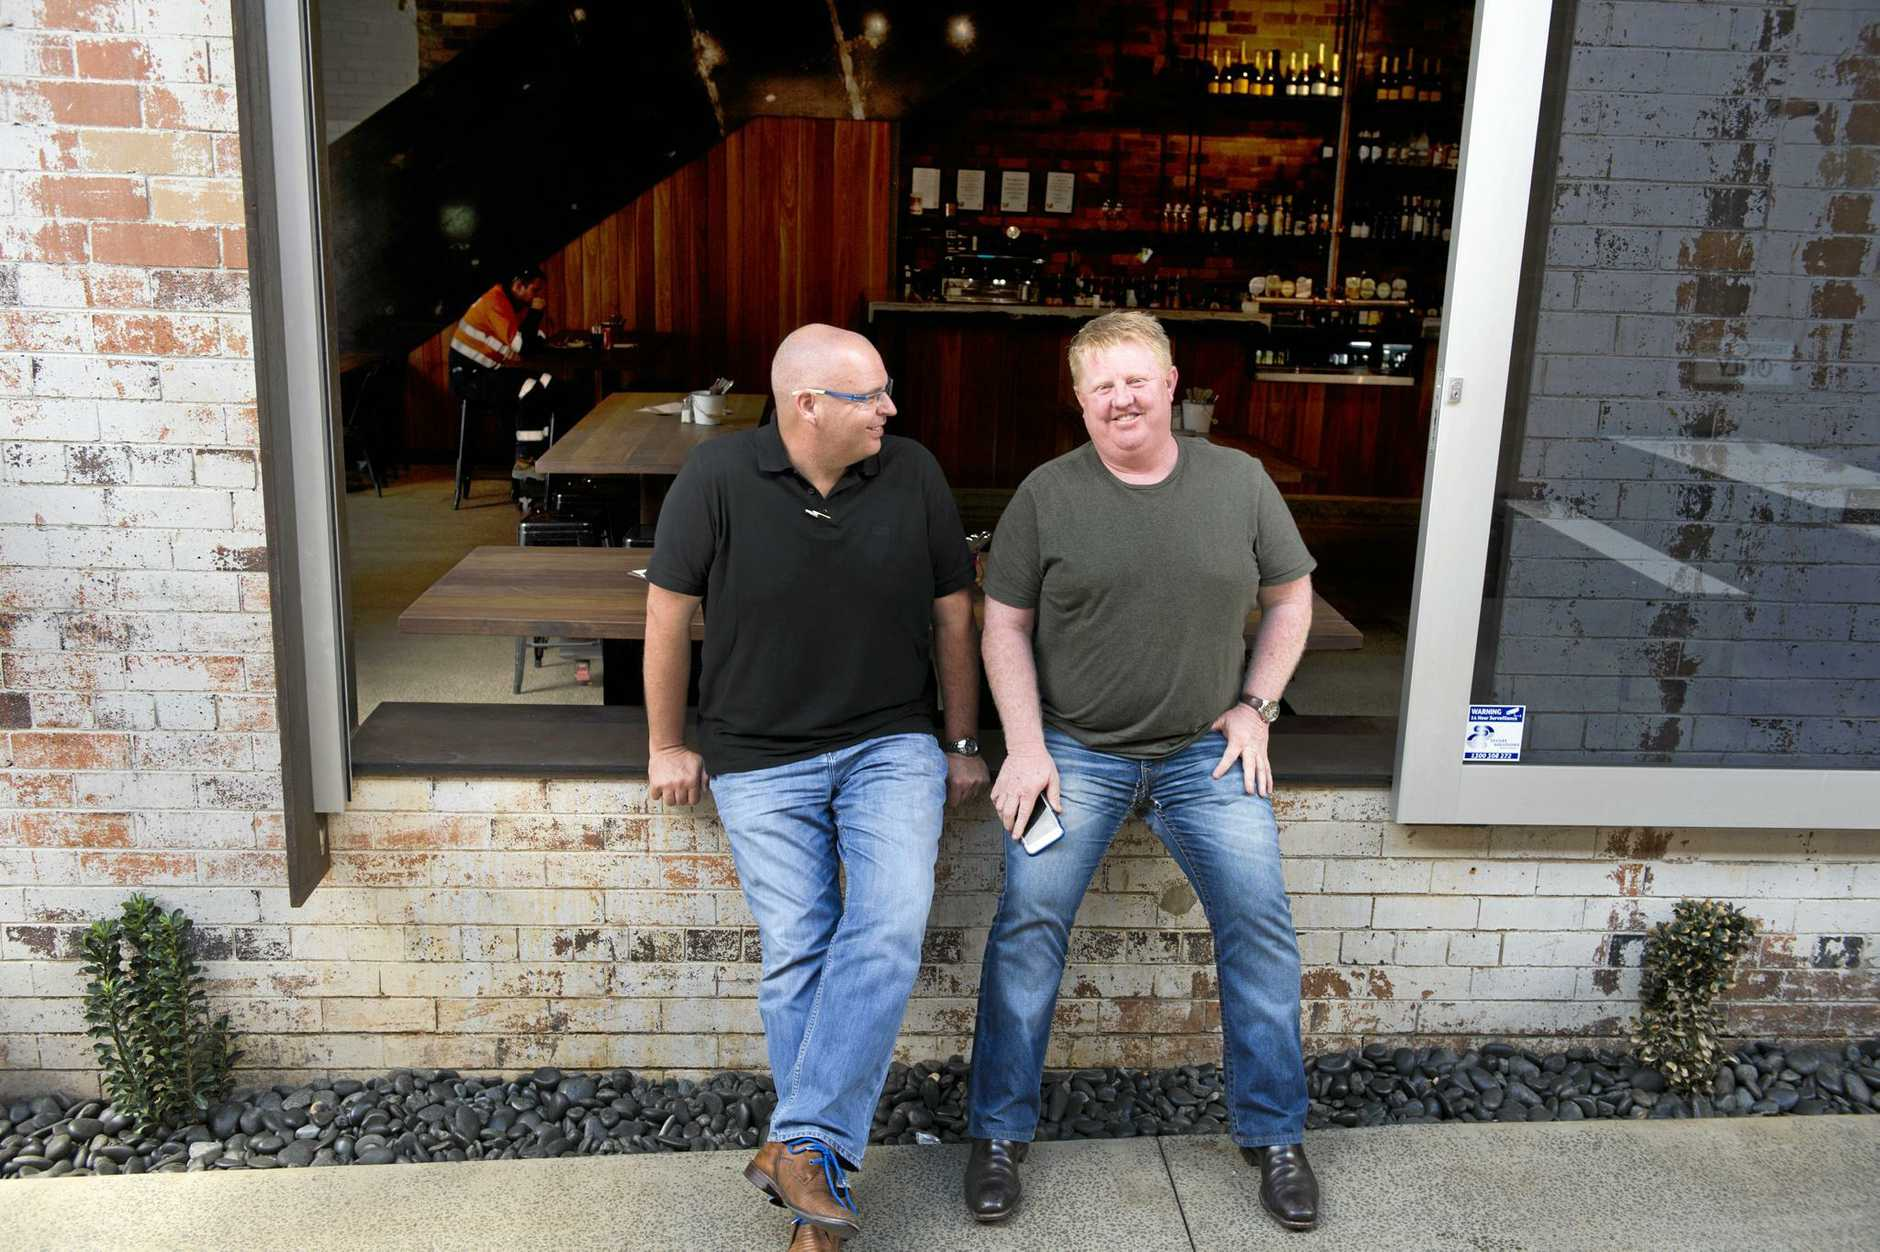 The Office, Duggan Street has been sold to Worldwide Hospitality Group directors Tony Kelly (left) and Scott Hoskins. November 2016